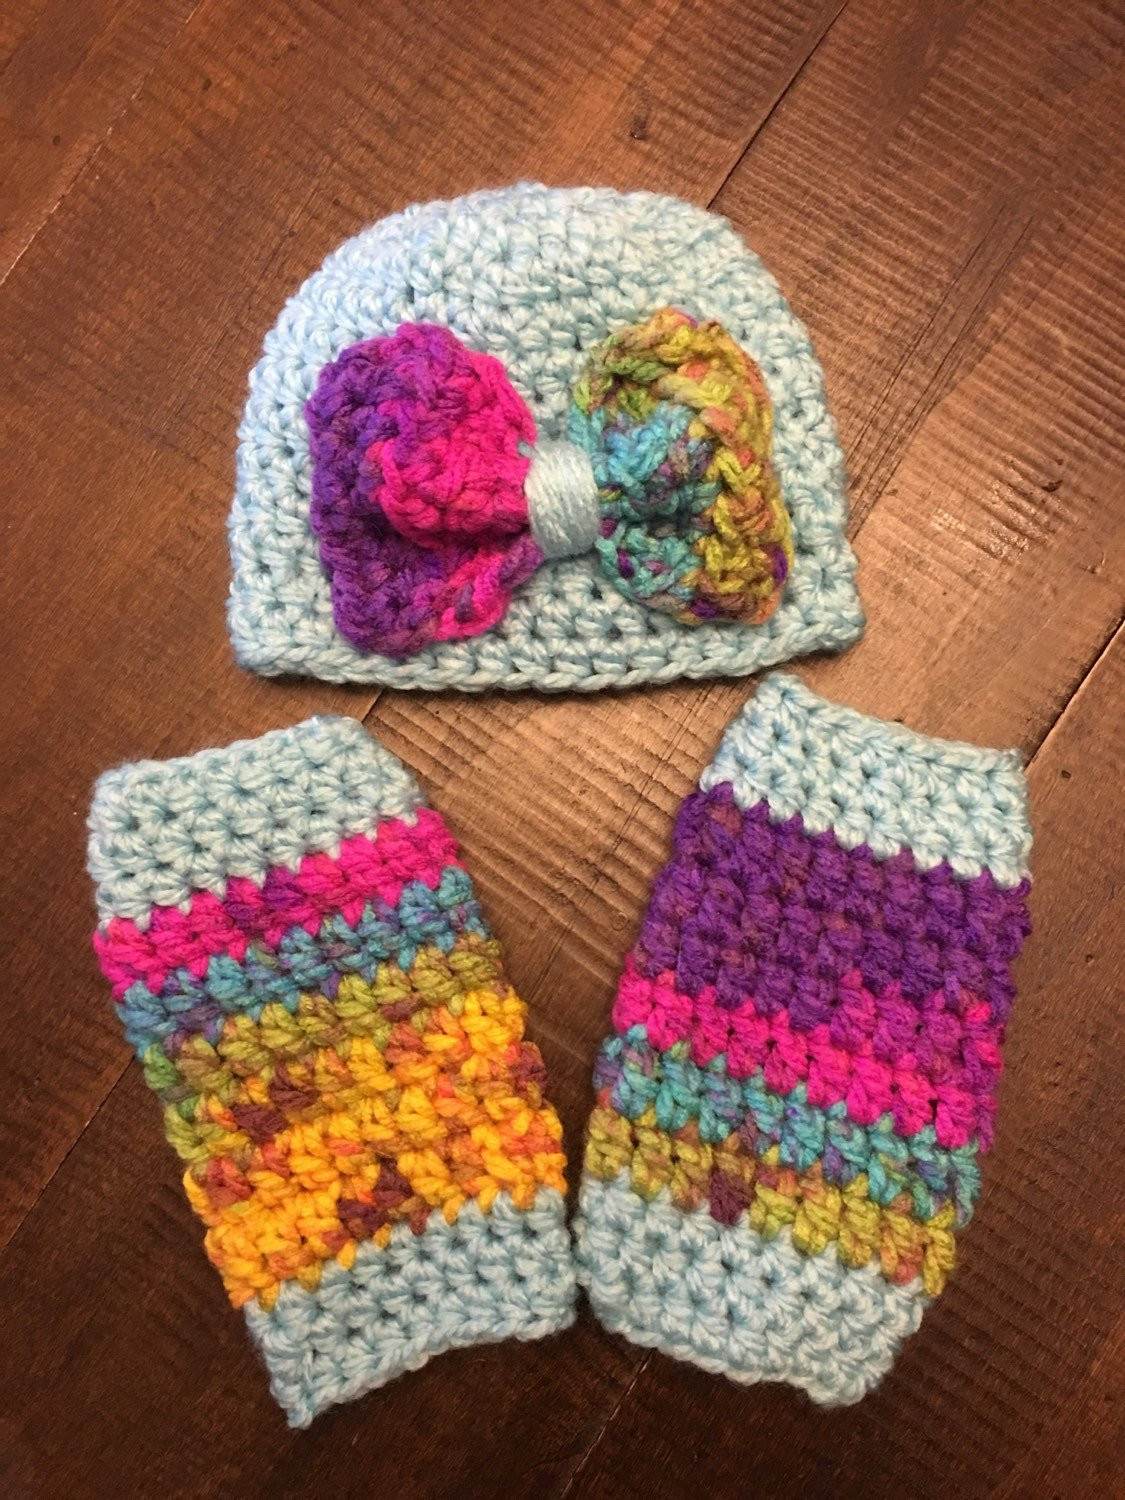 Inspirational Crochet Baby Leggings and Matching Hat 0 3 Months Crochet Tights Of Charming 48 Ideas Crochet Tights